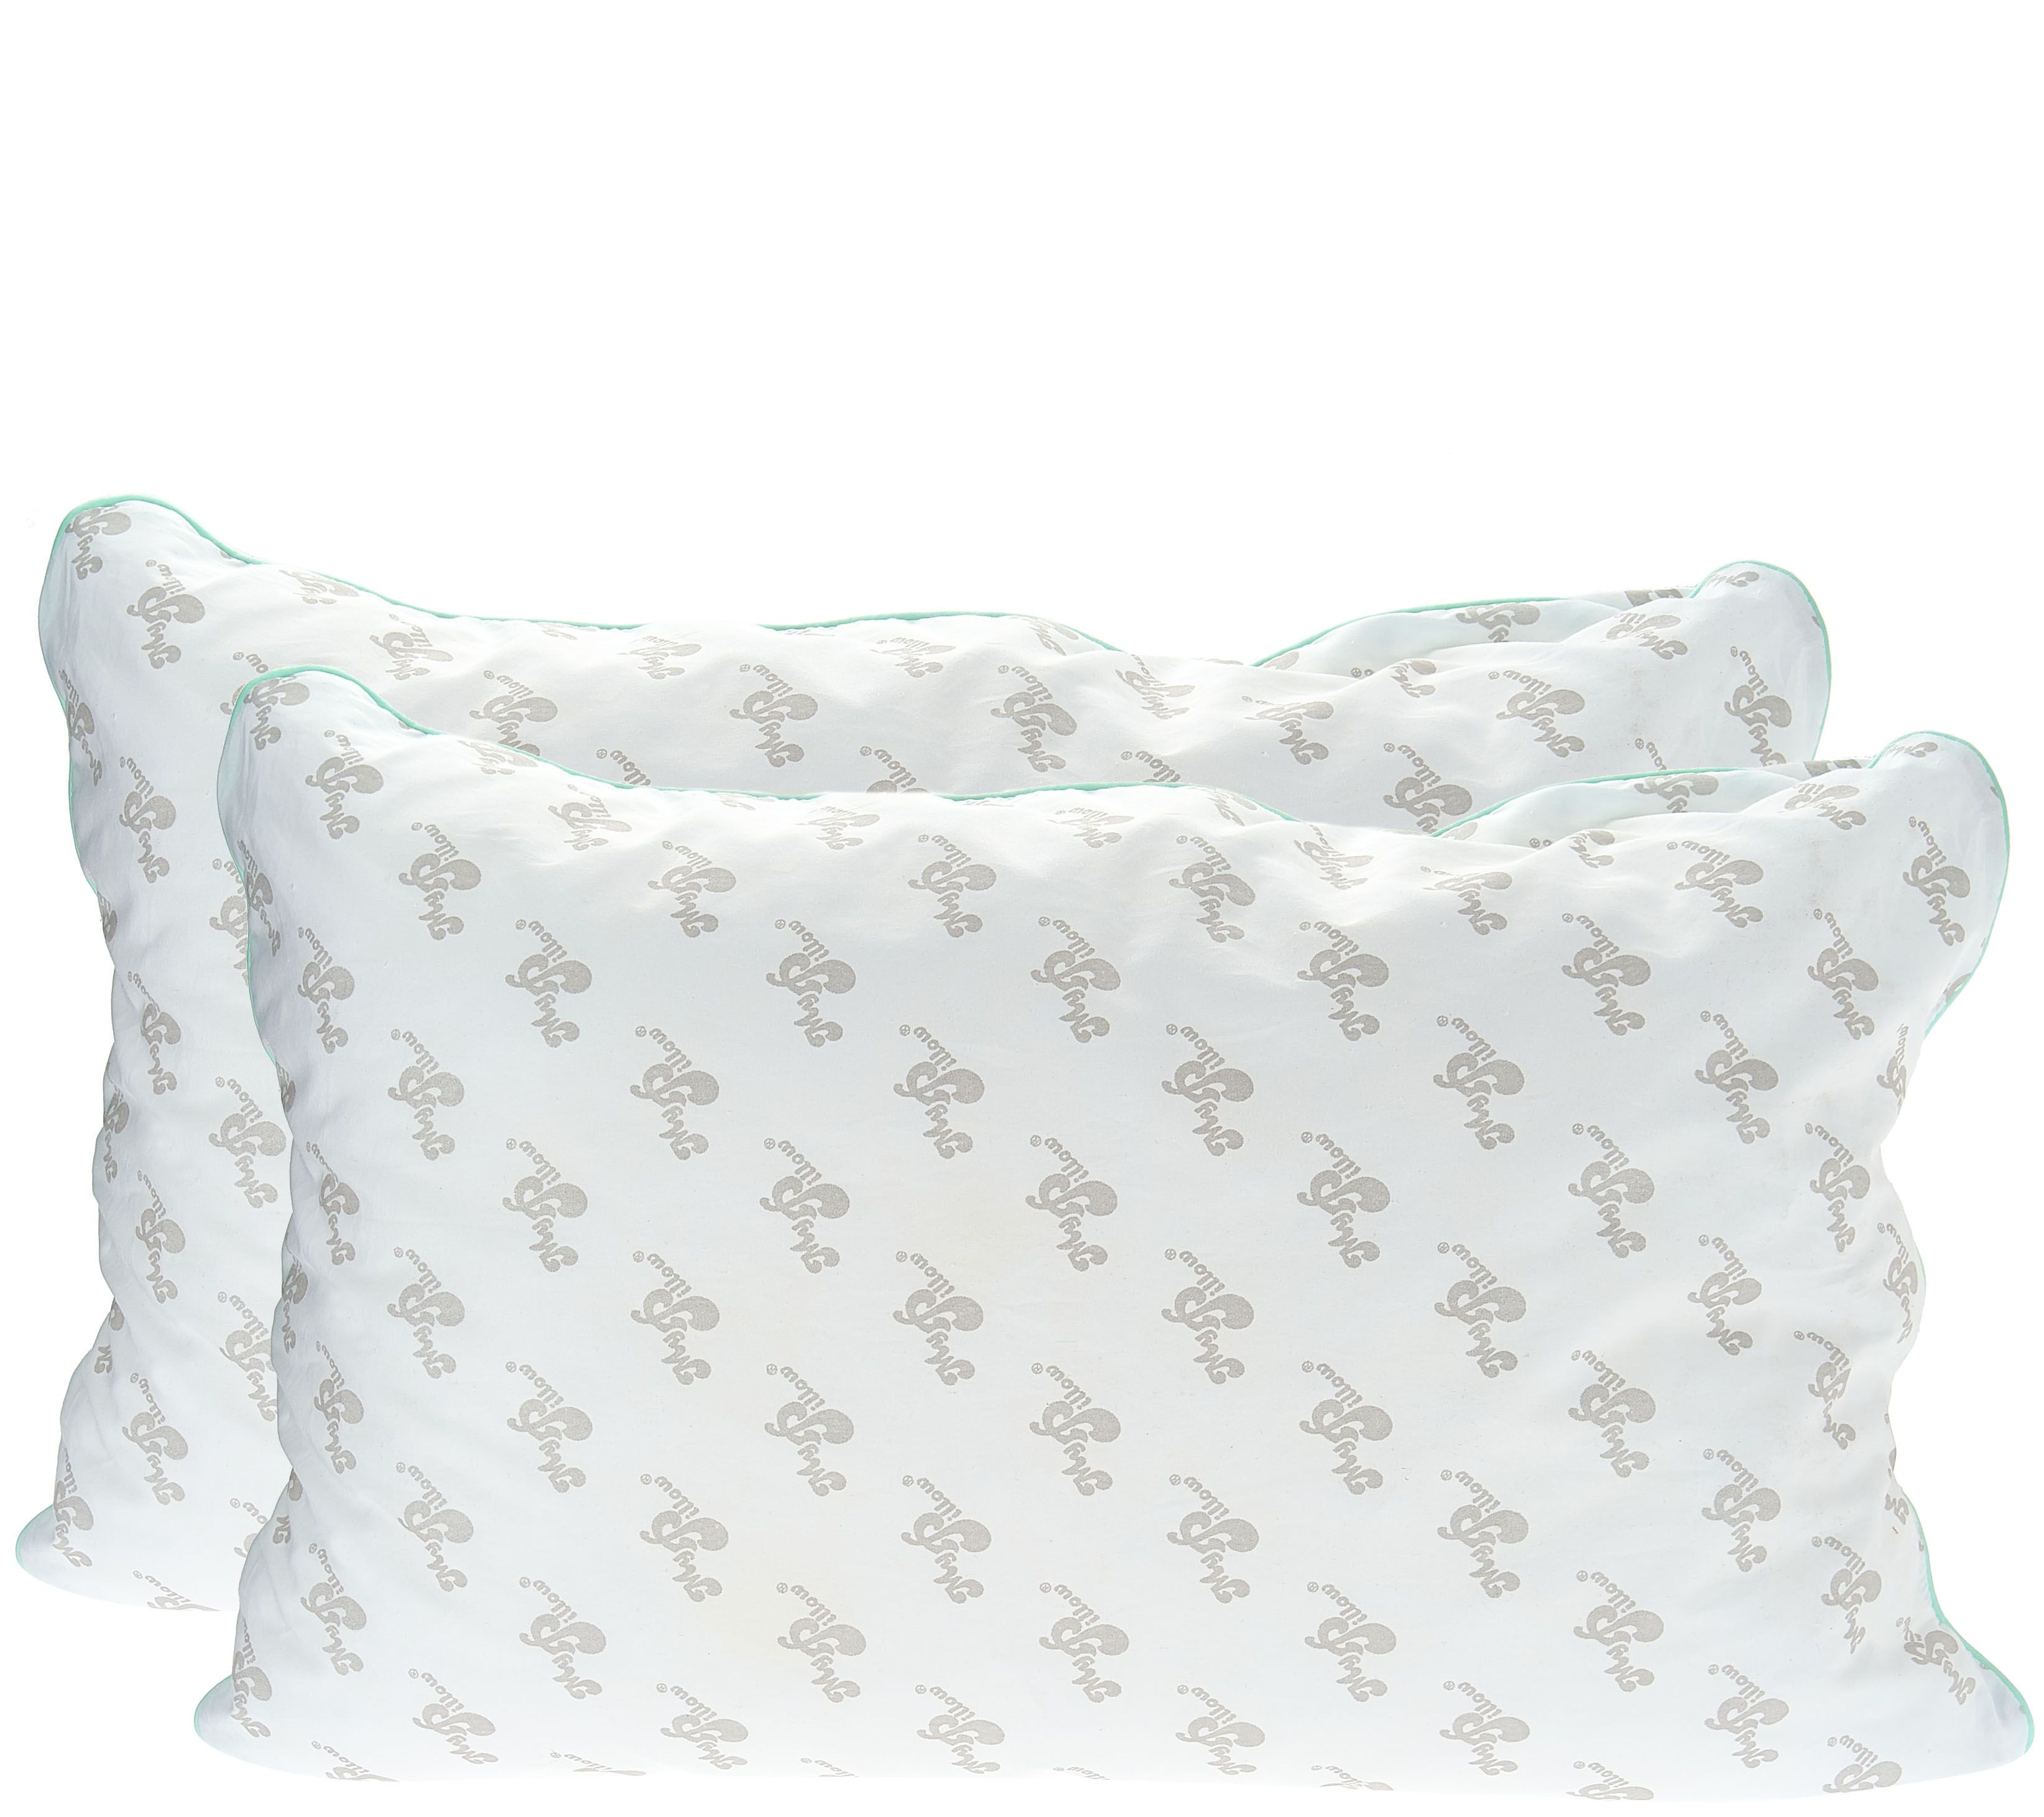 New customer qvc promo code - Mypillow Classic Set Of 2 Std Q Pillows W Color Cording H208864